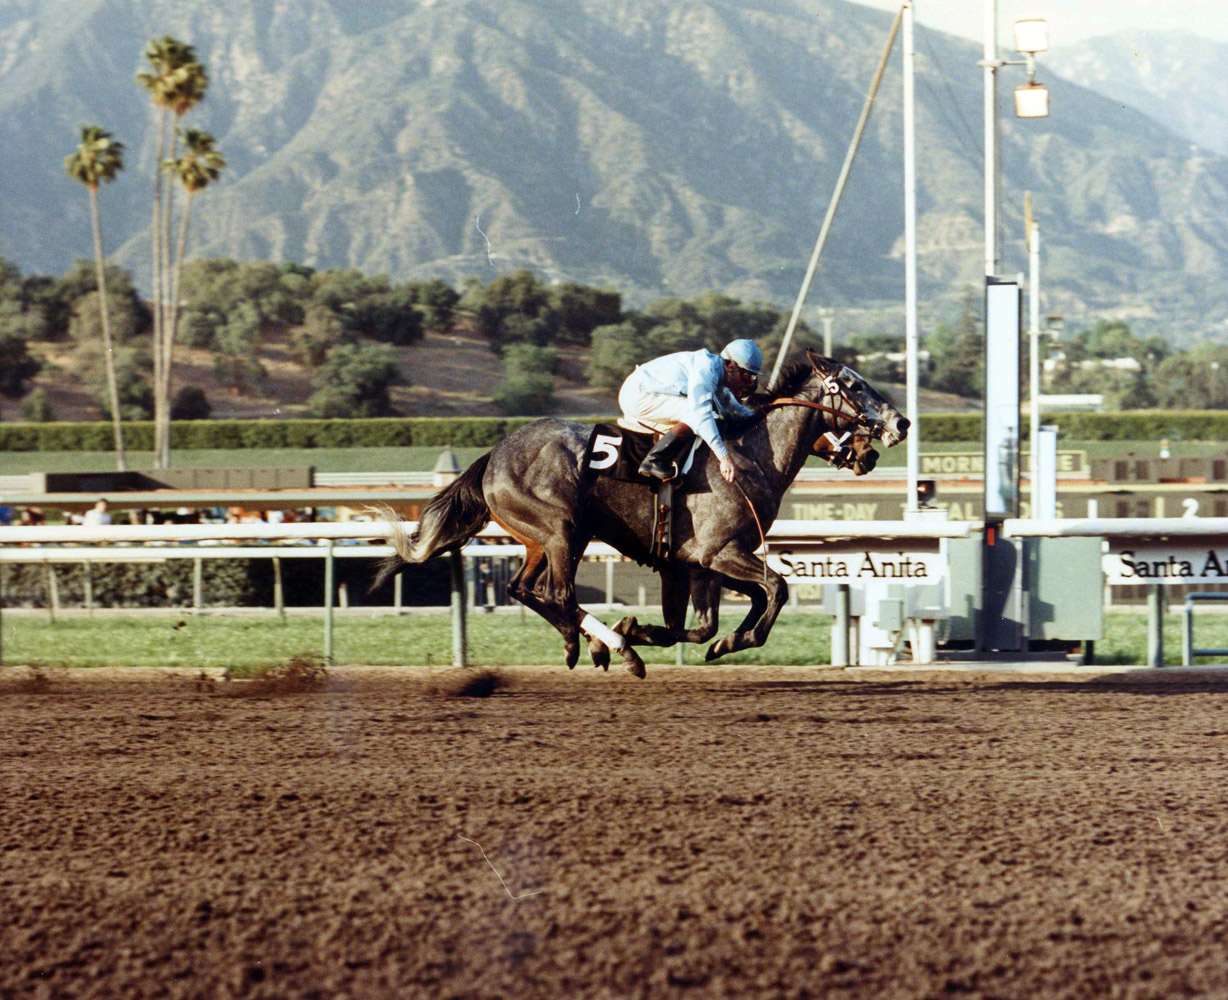 Princess Rooney (Eddie Delahoussaye up) winning the Susan's Girl at Santa Anita by a nose, March 1984 (Santa Anita Photo/Museum Collection)